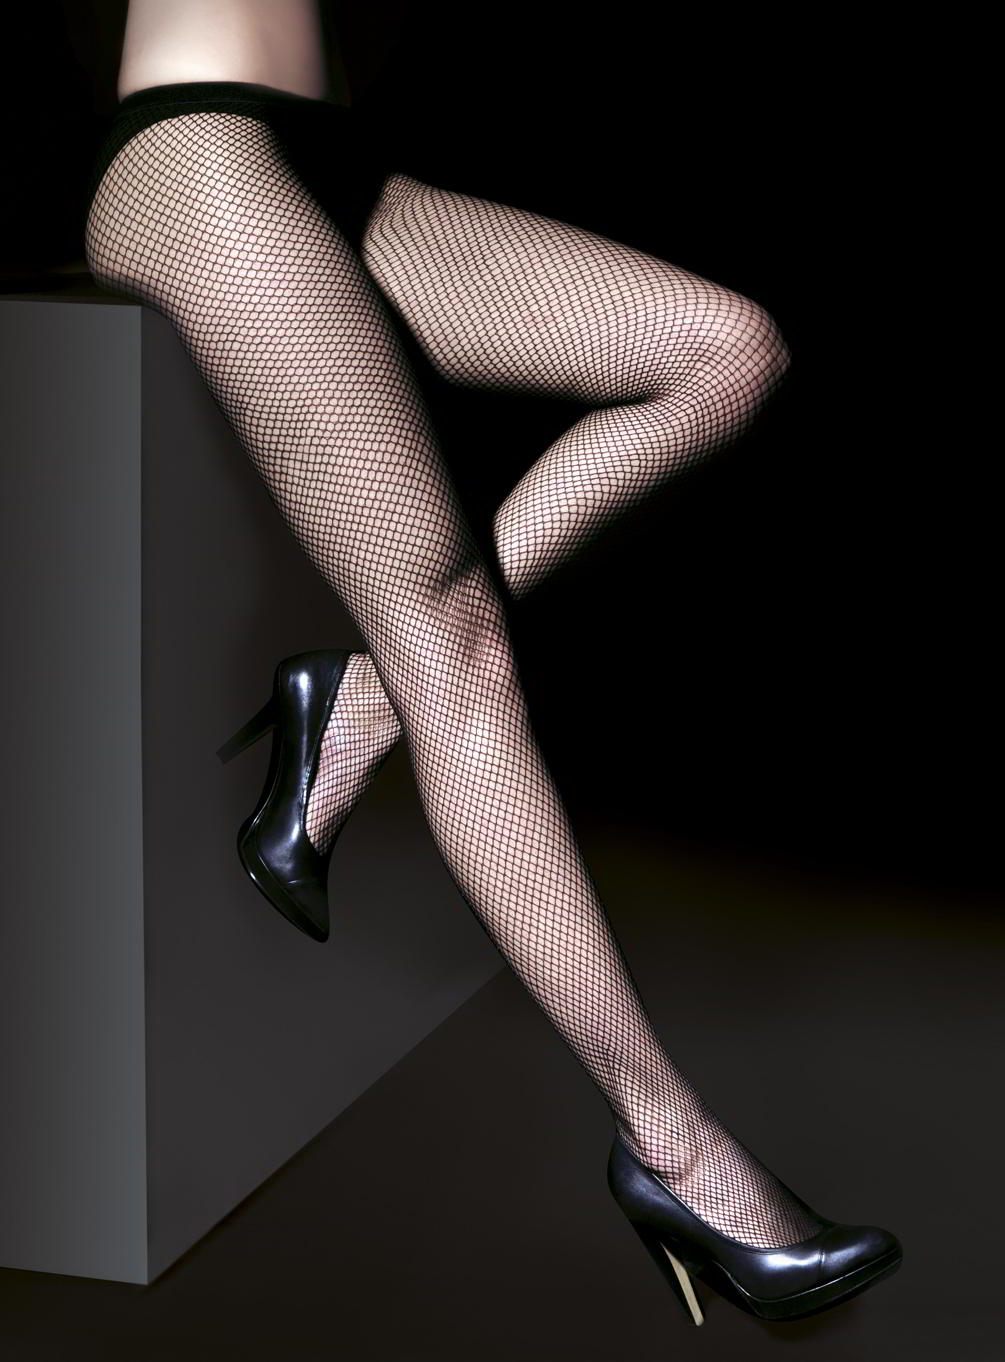 Premier Low Waist Fishnet File - Penti